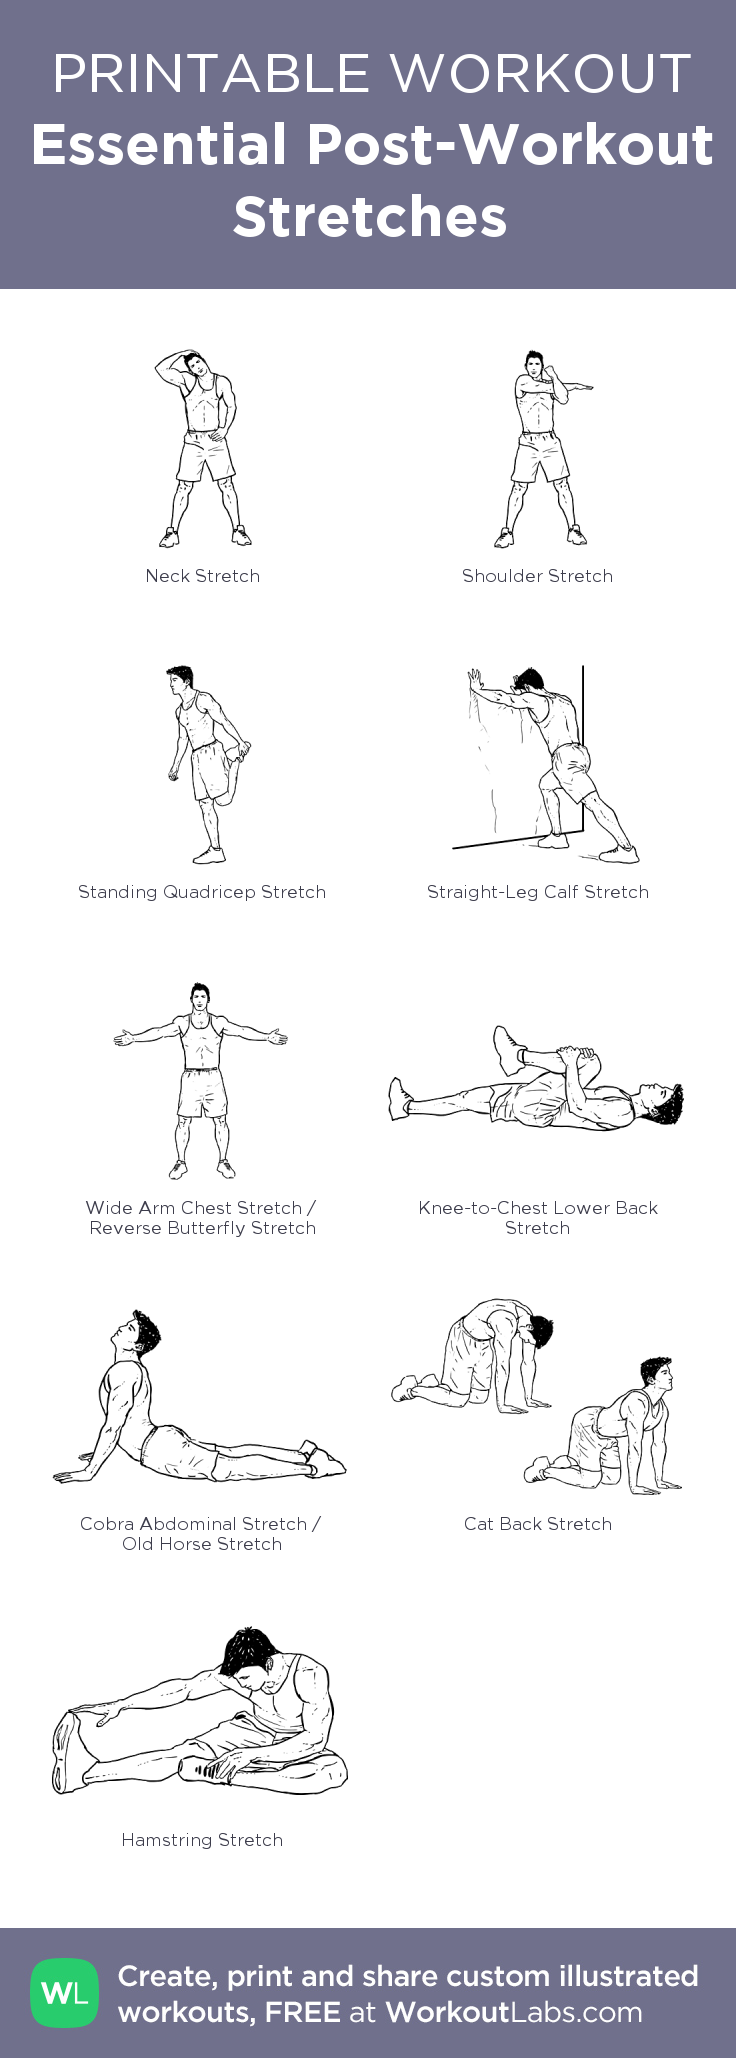 Essential PostWorkout Stretches my custom workout